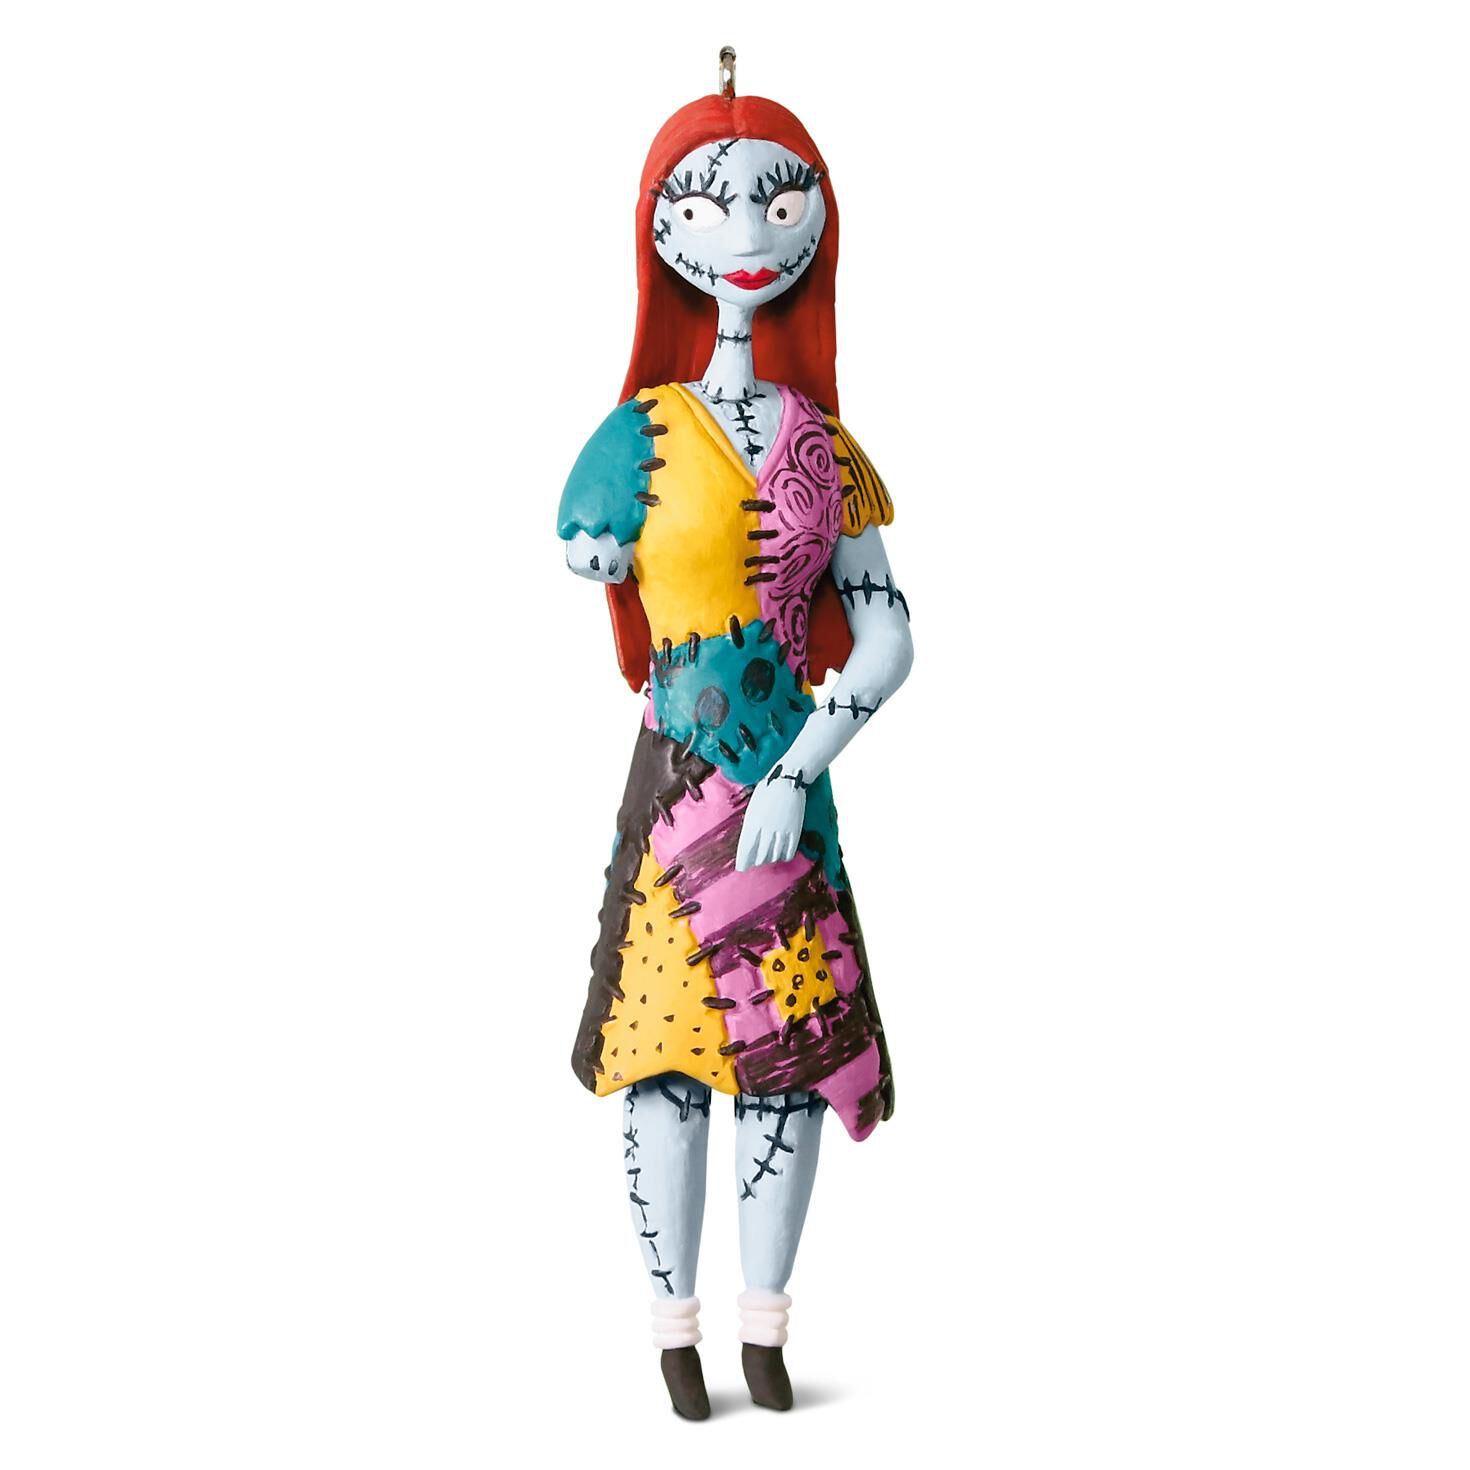 Sally From Tim Burton's The Nightmare Before Christmas Ornament ...